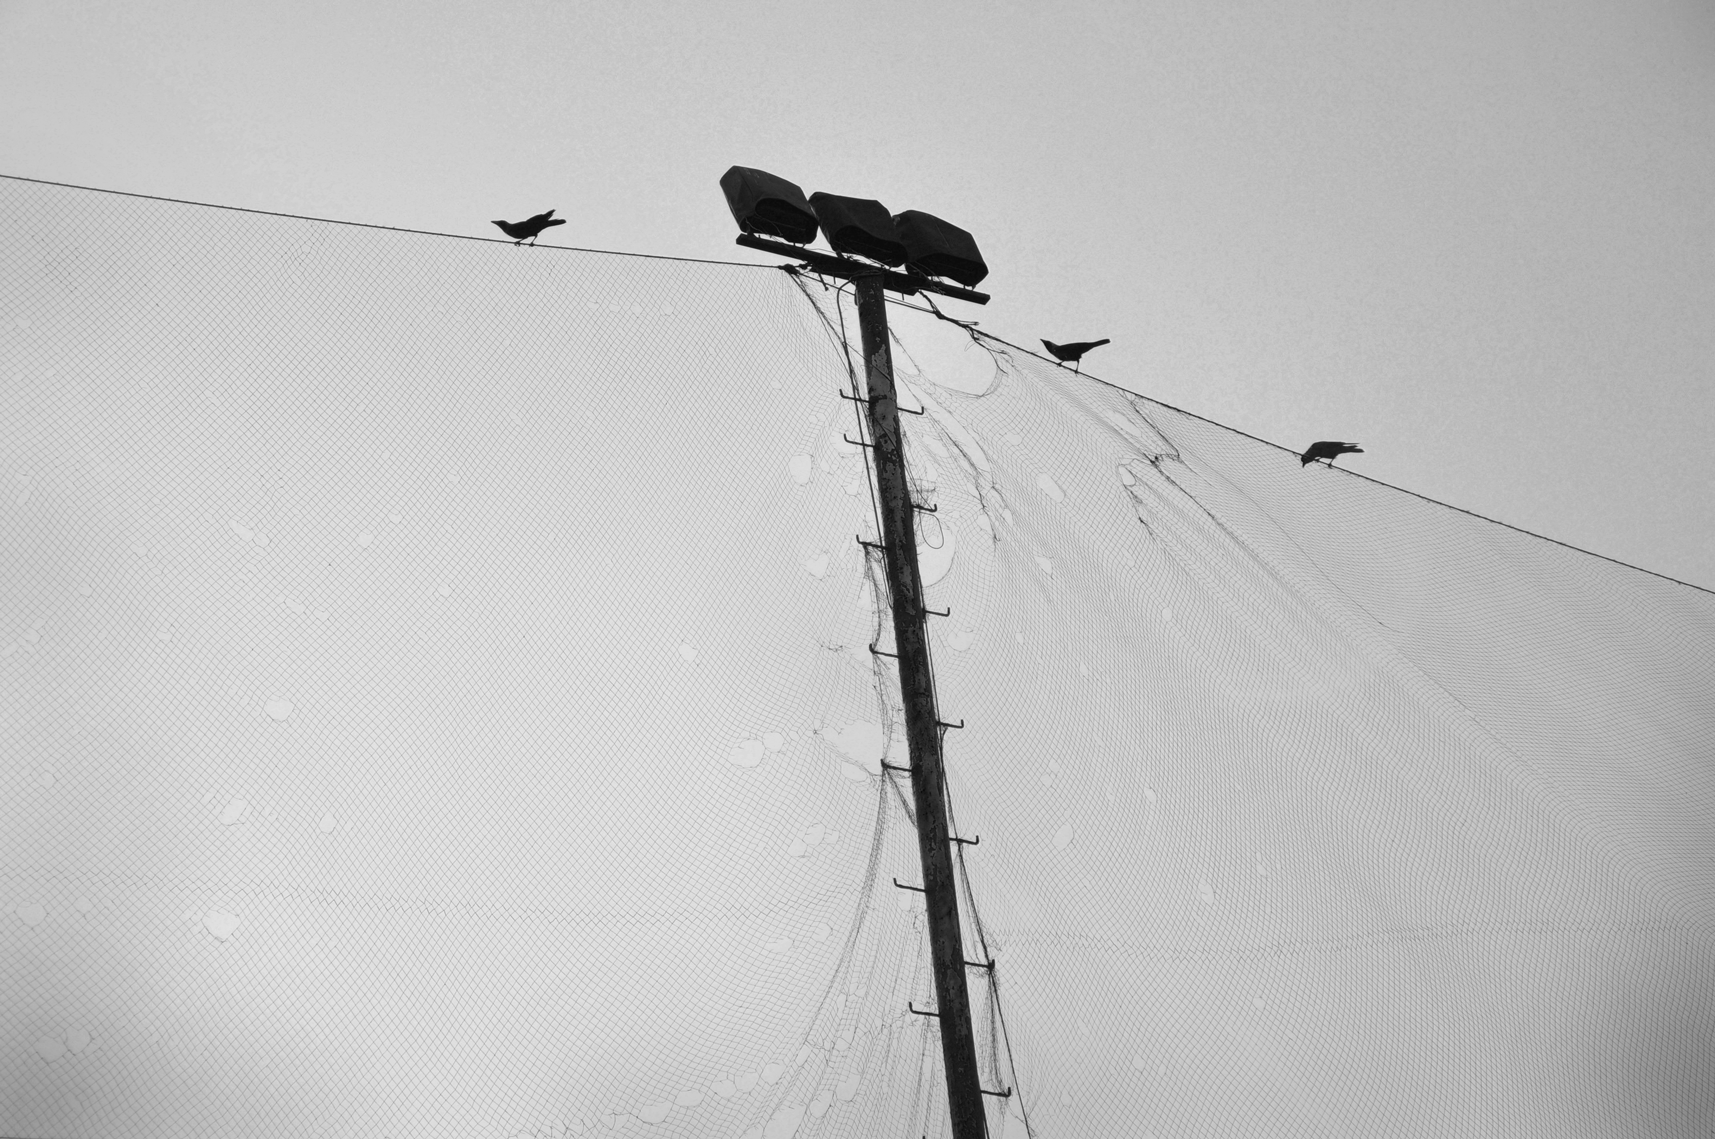 crows on street lights